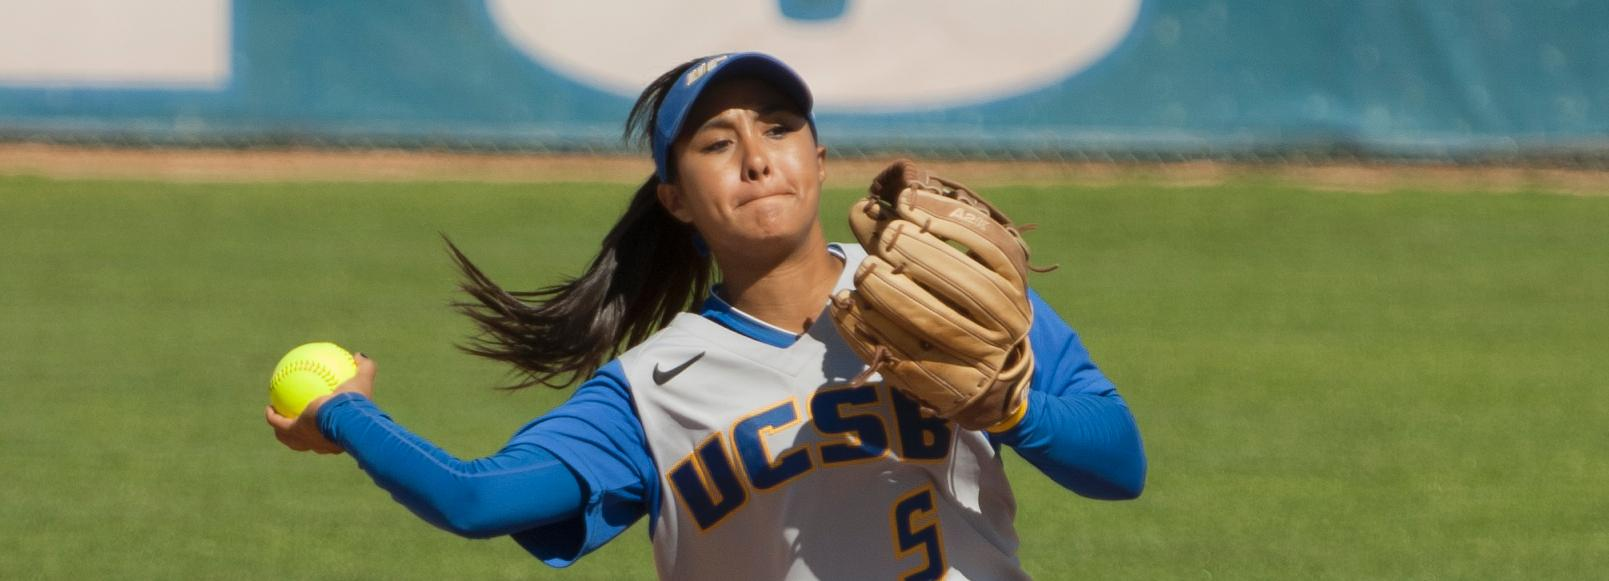 Pilpil's Late Game Heroics Help Gauchos Edge Out Utah for First Win